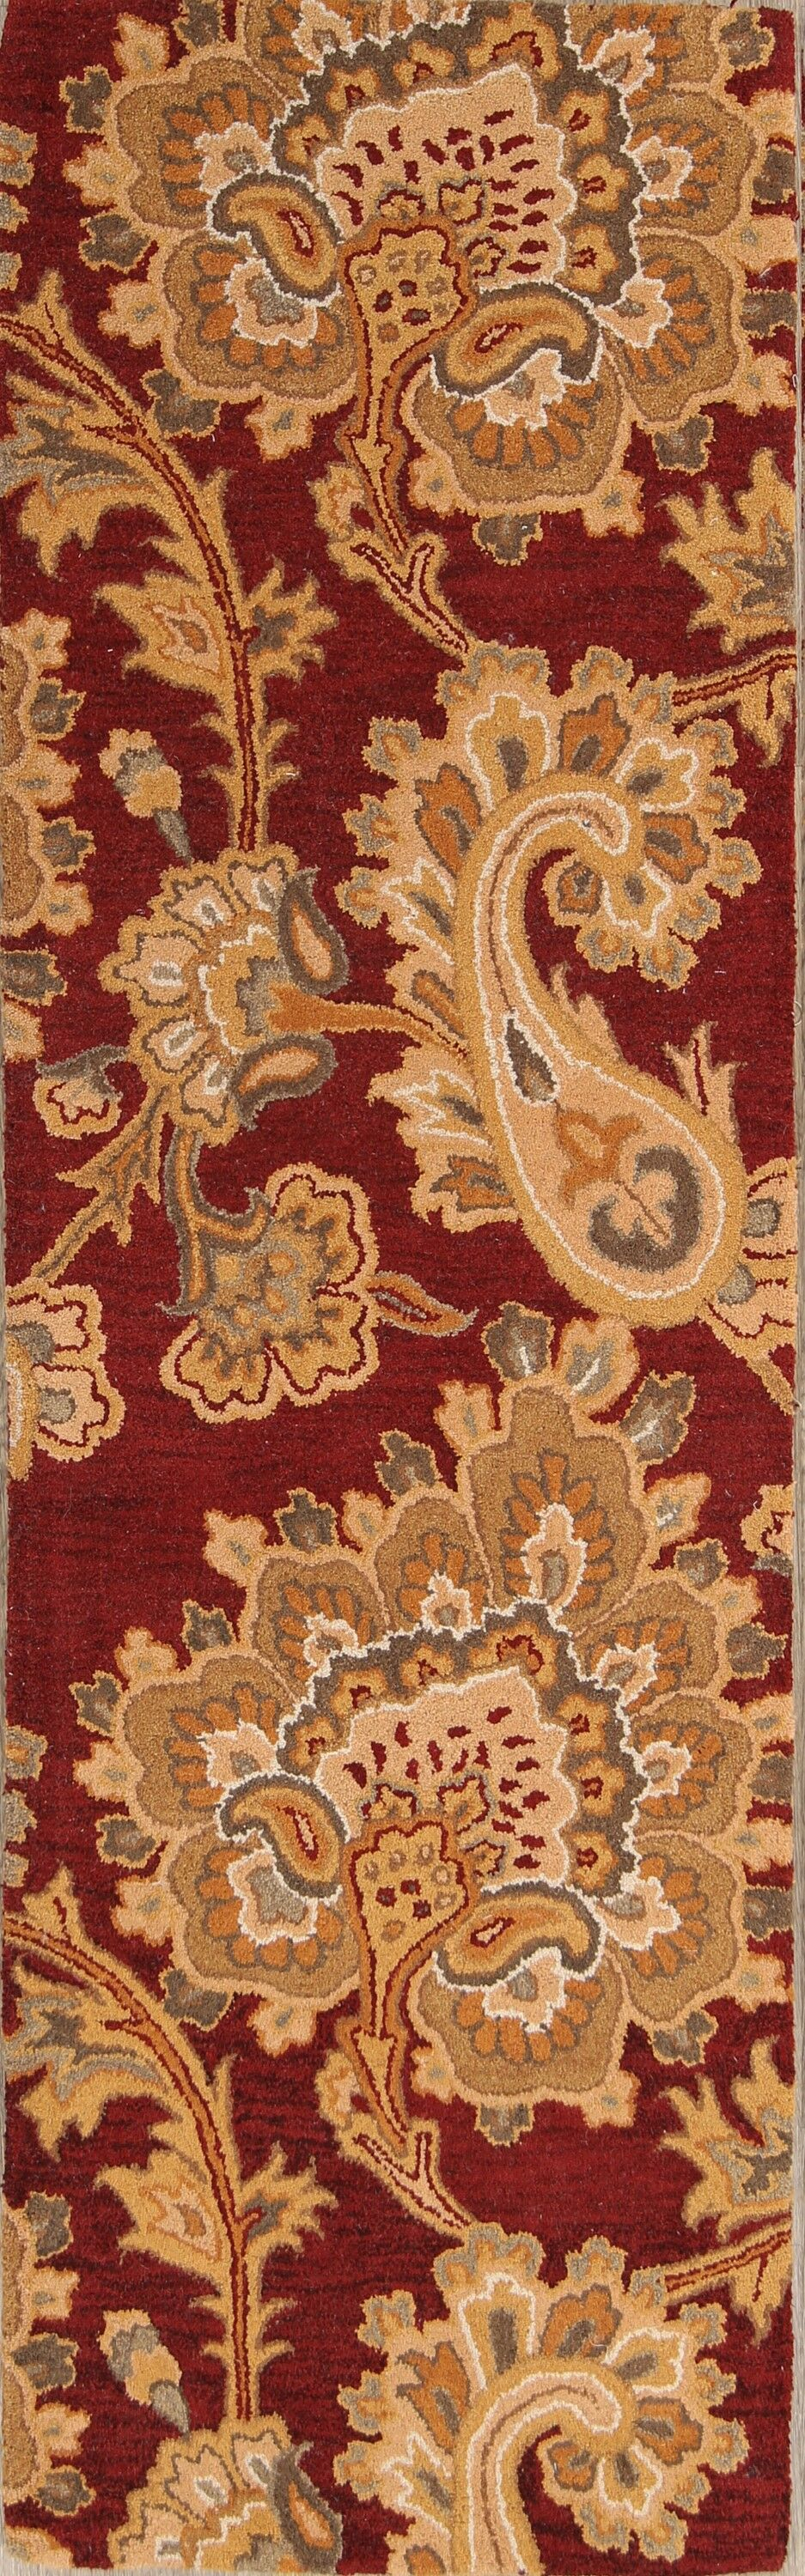 One-of-a-Kind Tadeo Hand-Tufted Wool Red/Burgundy Area Rug Rug Size: Rectangle 10